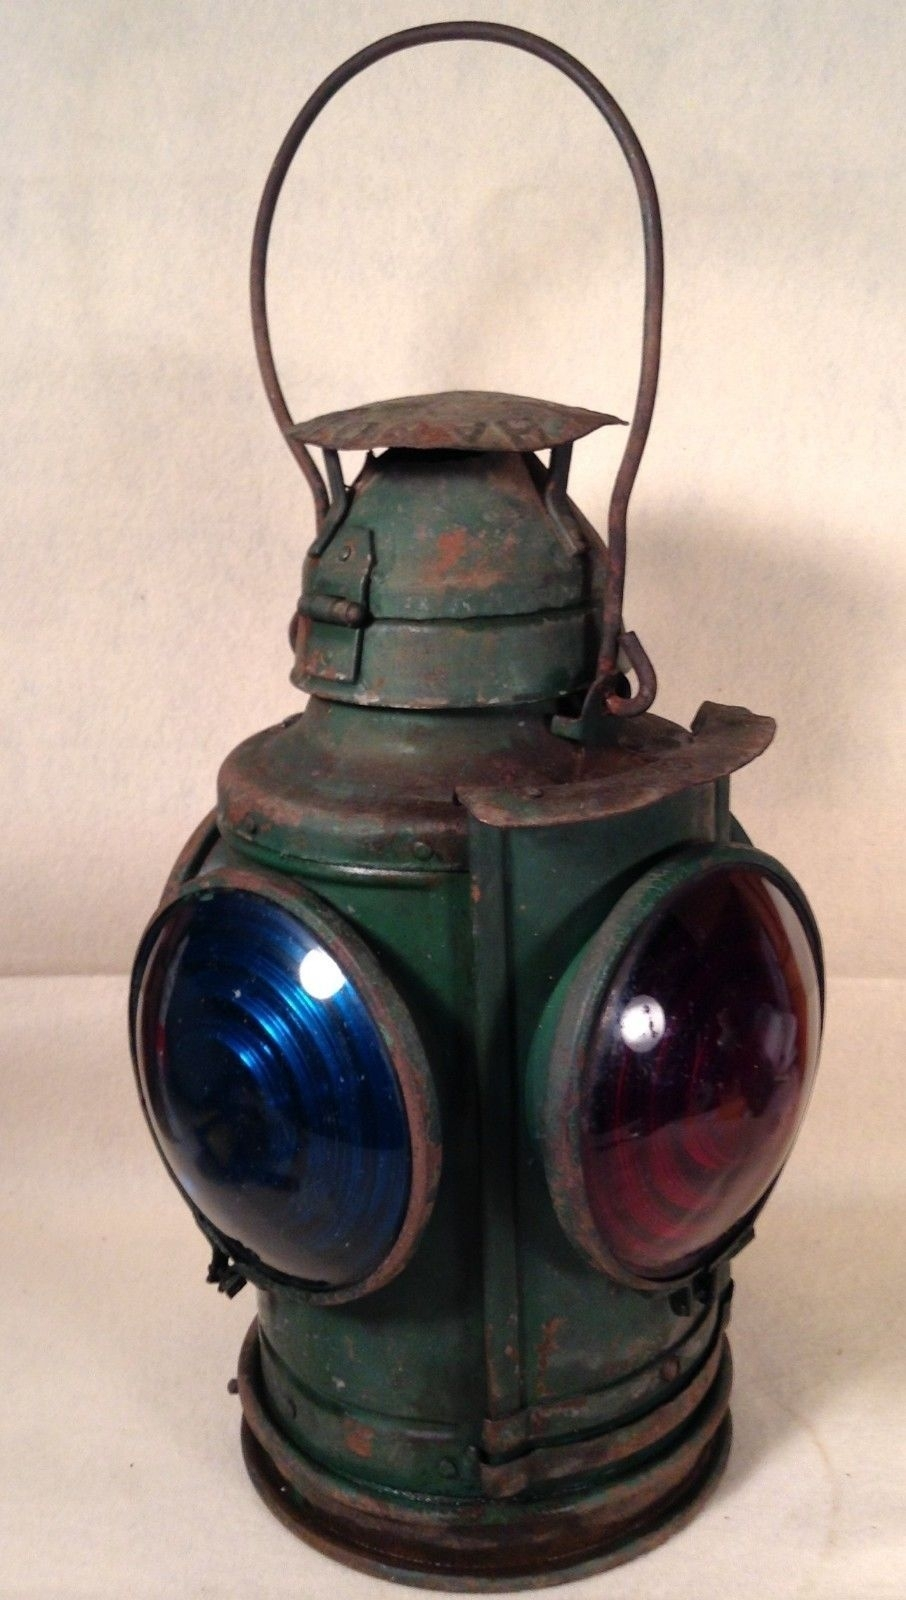 Antique Vintage Handland Railroad Lantern St. Louis - 4 Lens - 1 Red pertaining to Outdoor Railroad Lanterns (Image 4 of 20)